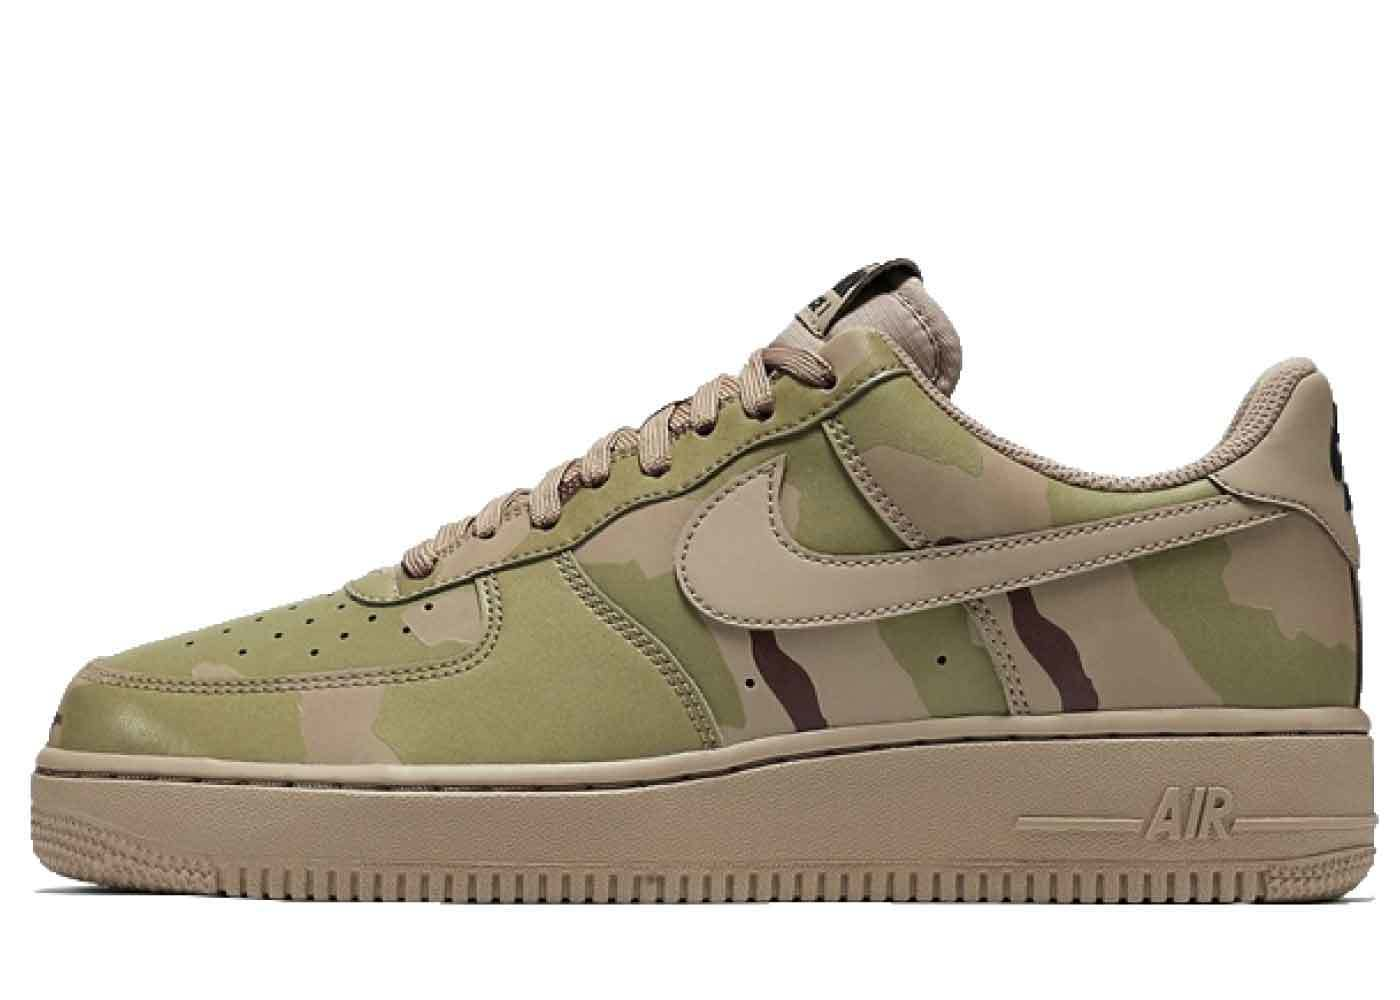 Nike Air Force 1 Low Reflective Desert